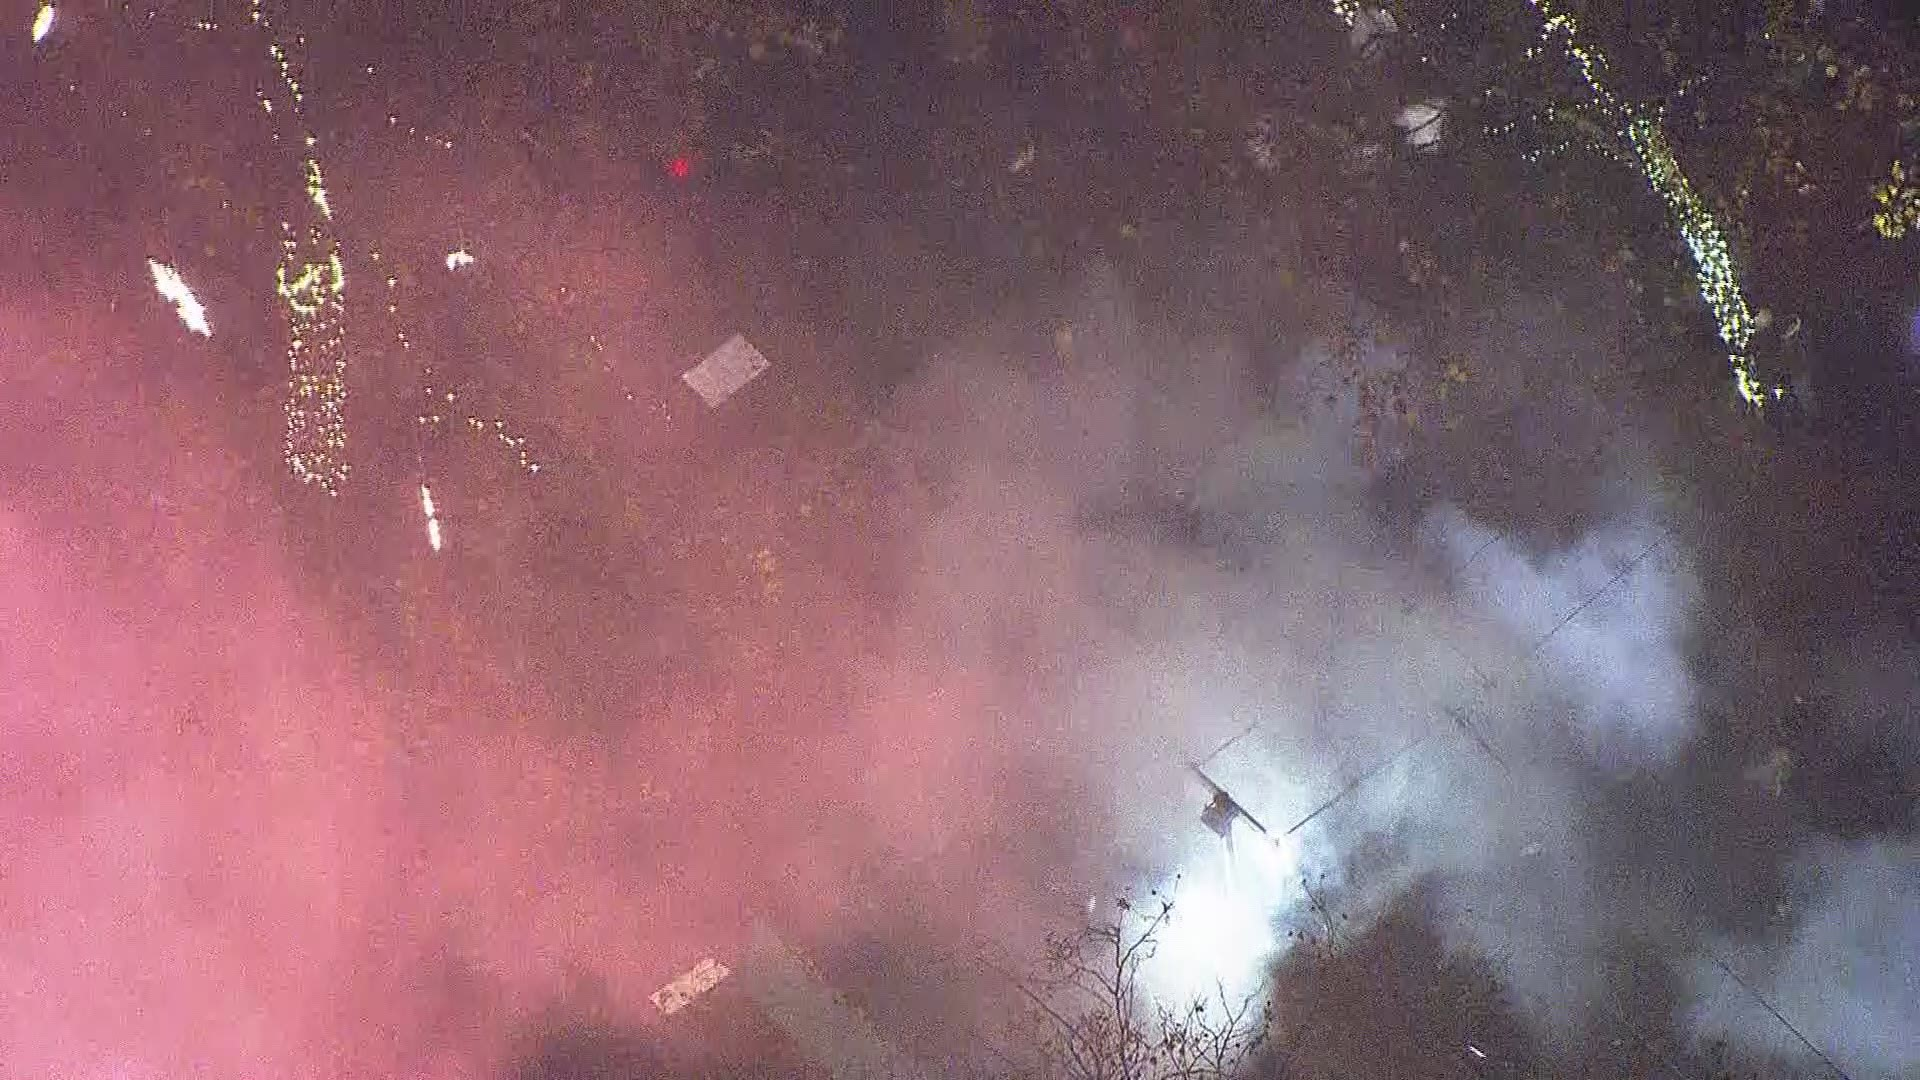 Police Use Flash Bangs Smoke Bombs To Deter Protesters Kgw Com